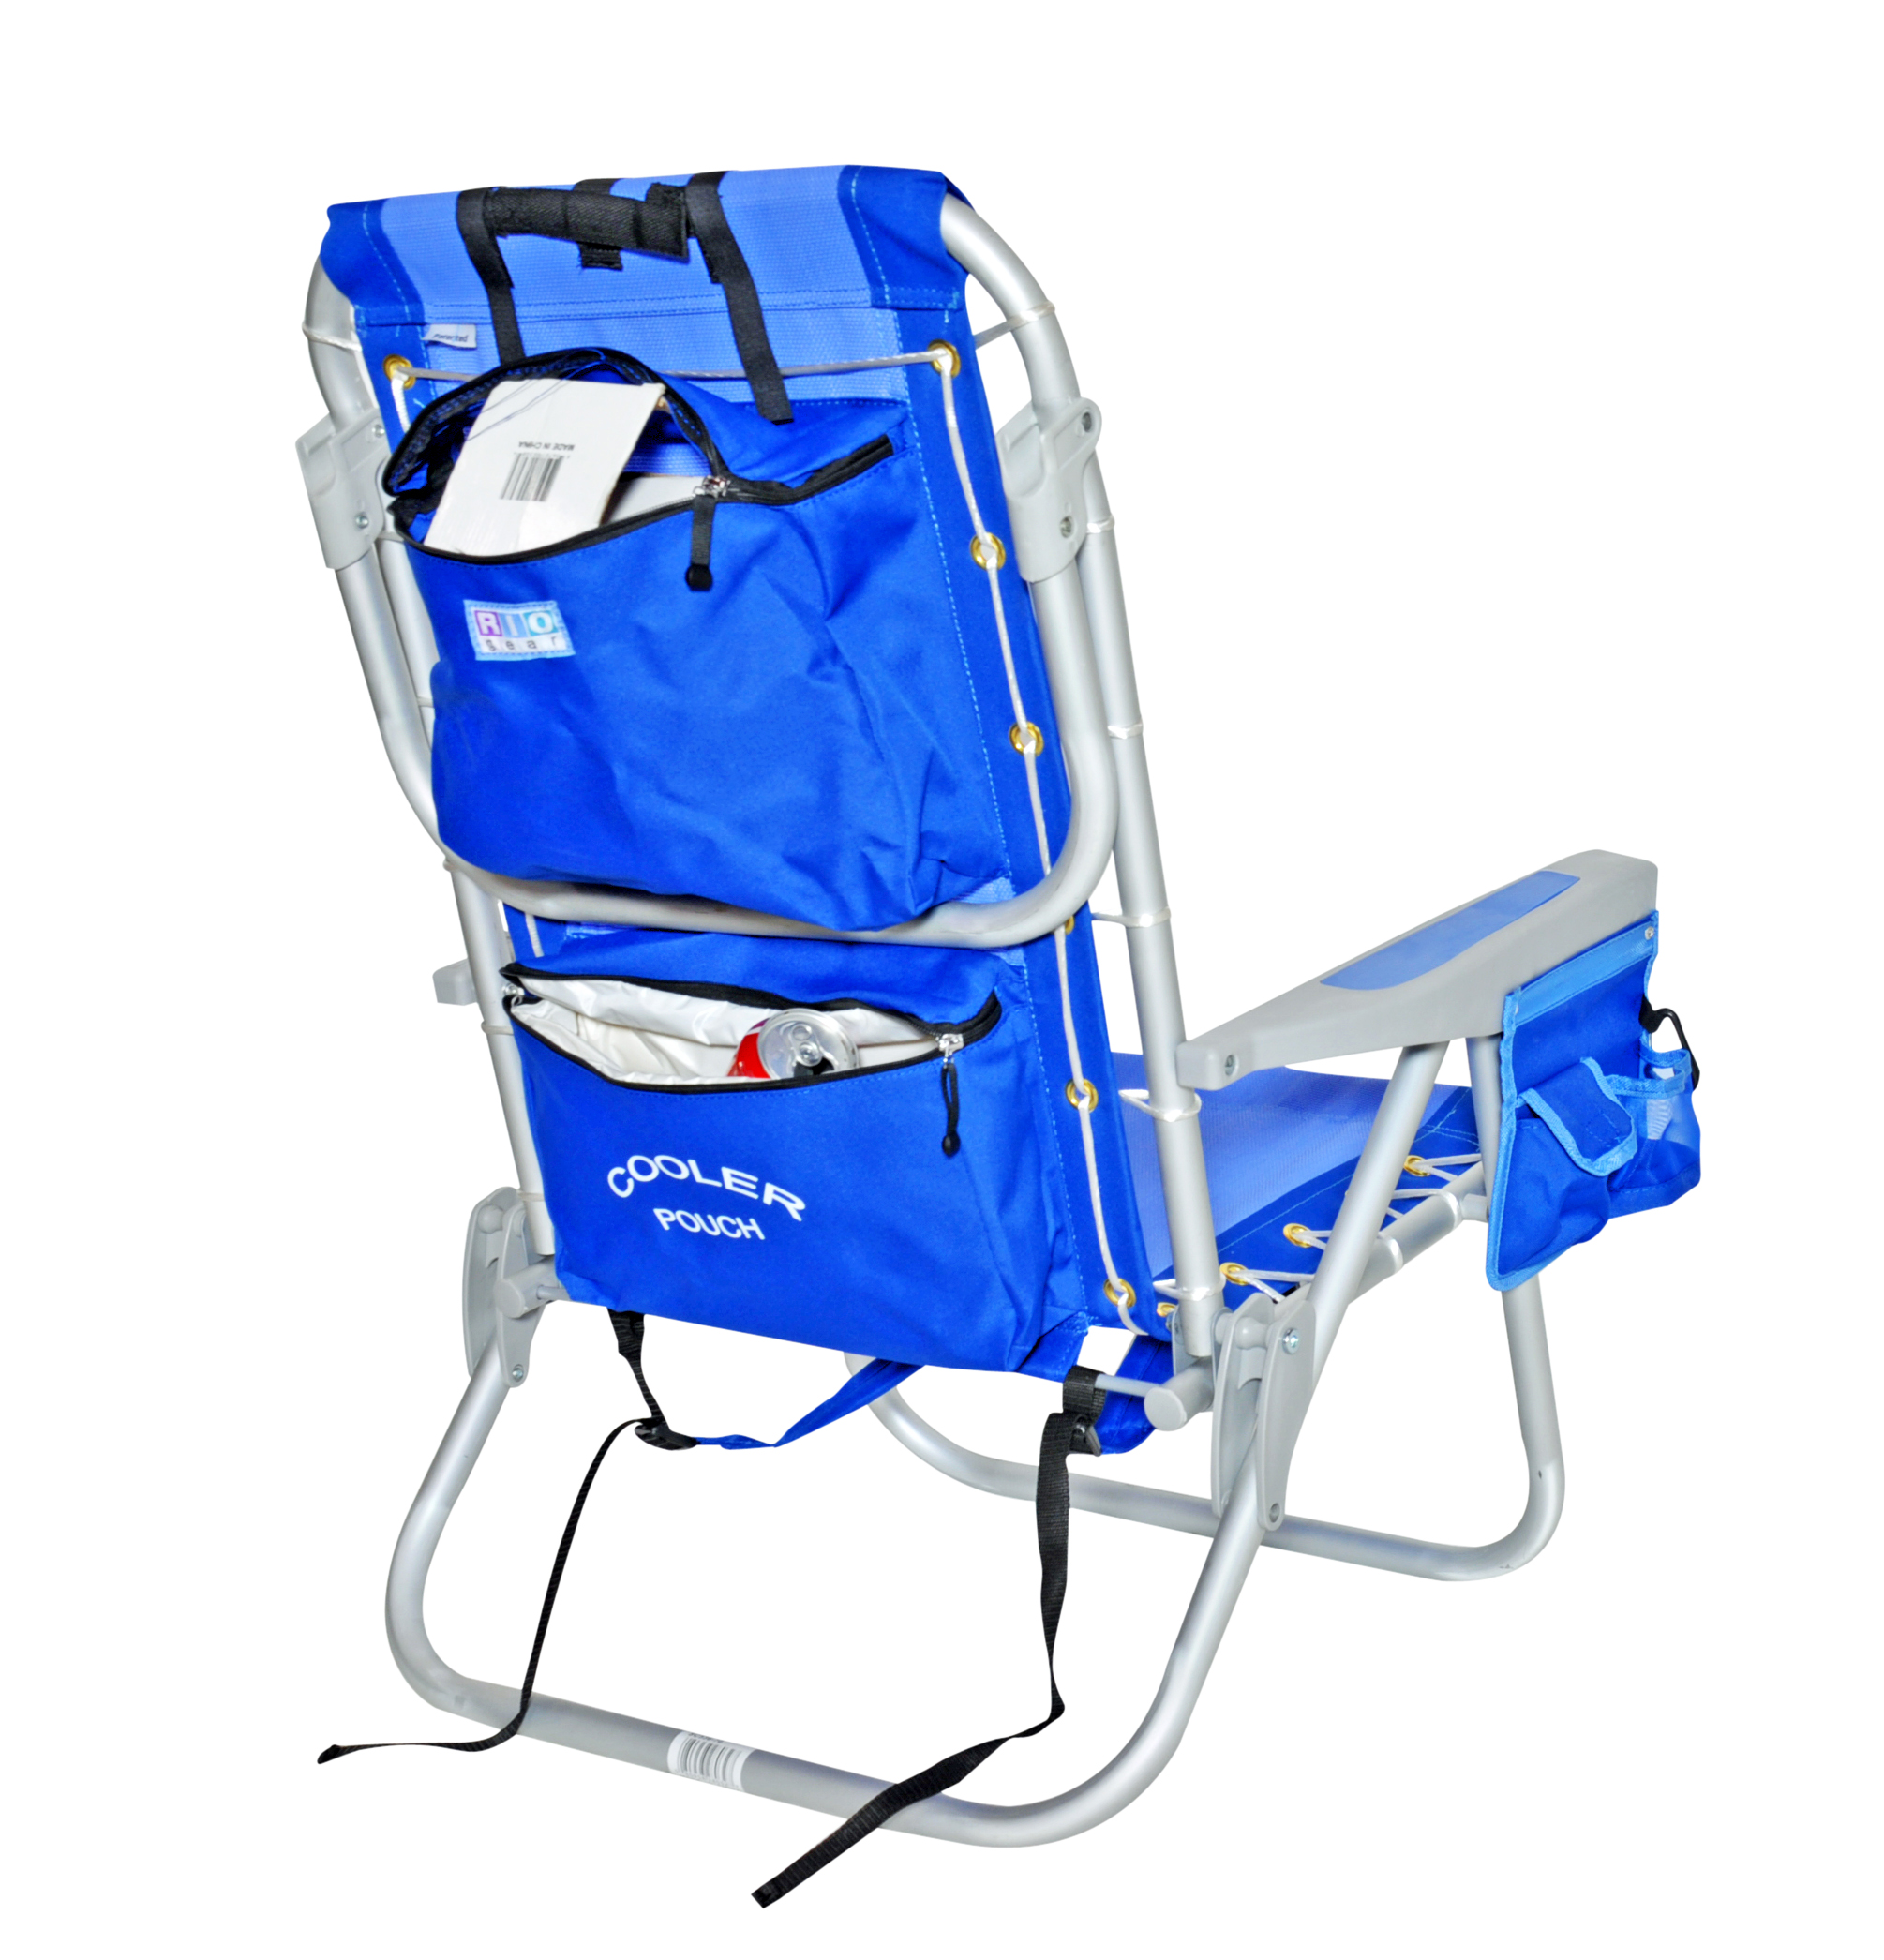 Backpack cooler chair - Rio 5 Pos Layflat Ultimate Backpack Beach Chair